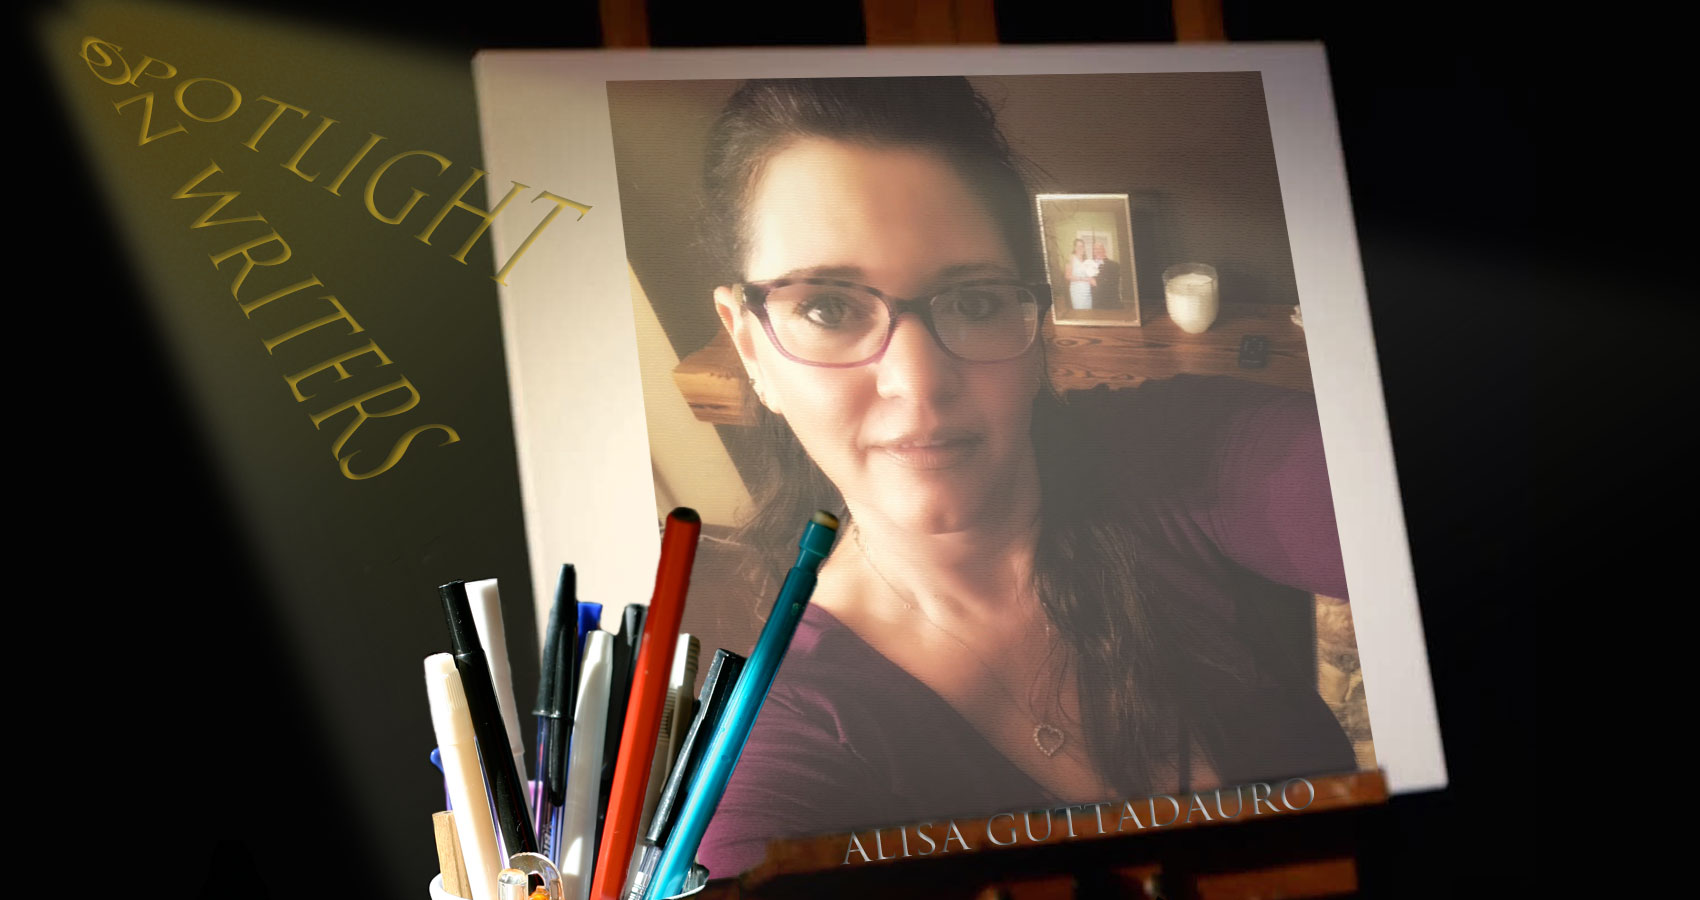 Spotlight On Writers - Alisa Guttadauro, interview at Spillwords.com